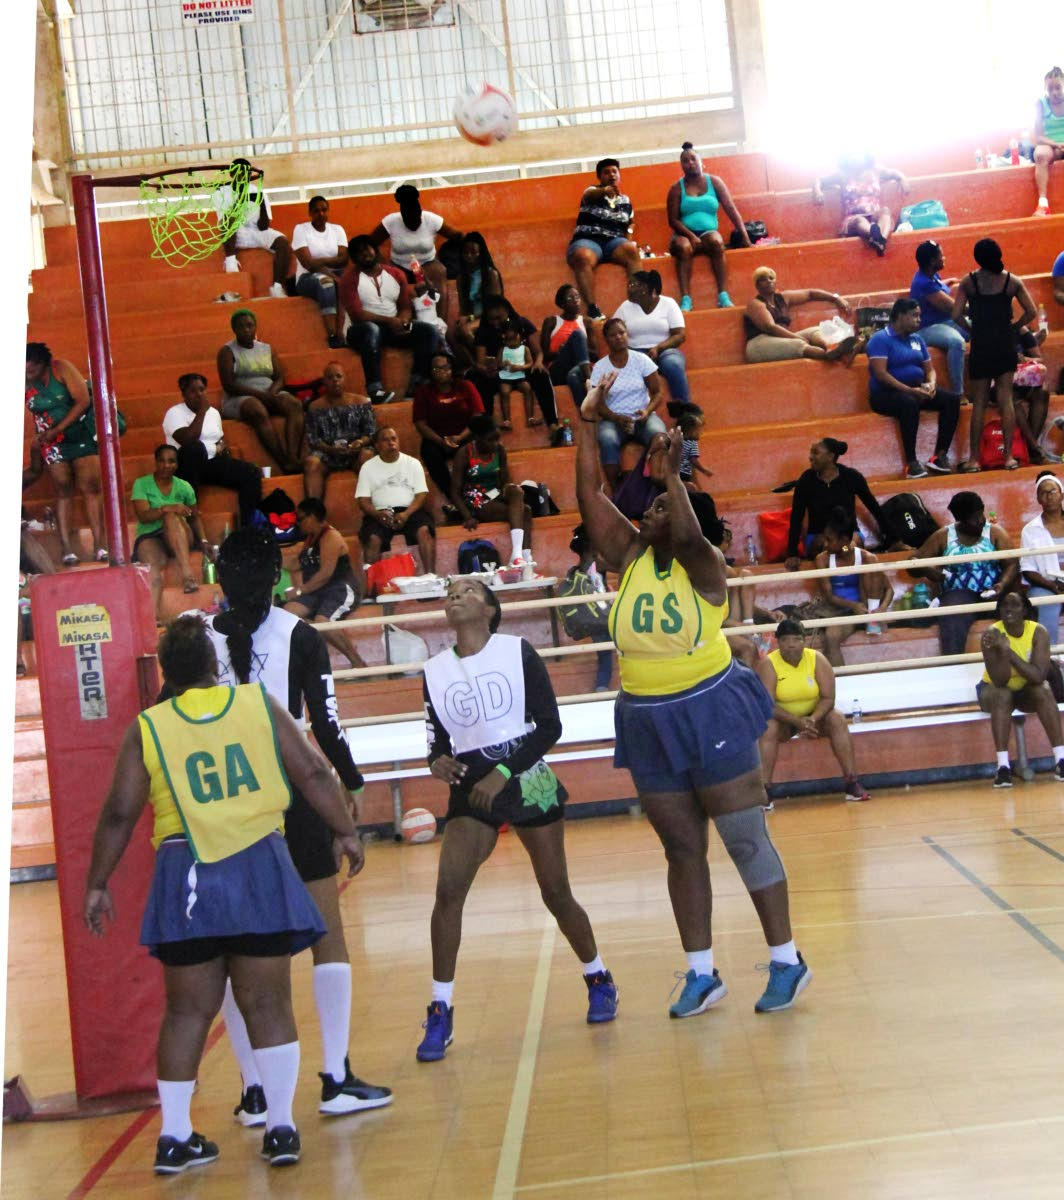 Defence Force's Mellisa Snaggs (GS) shoot to score during a Courts All Sectors Netball League Championship Division match, on Saturda.